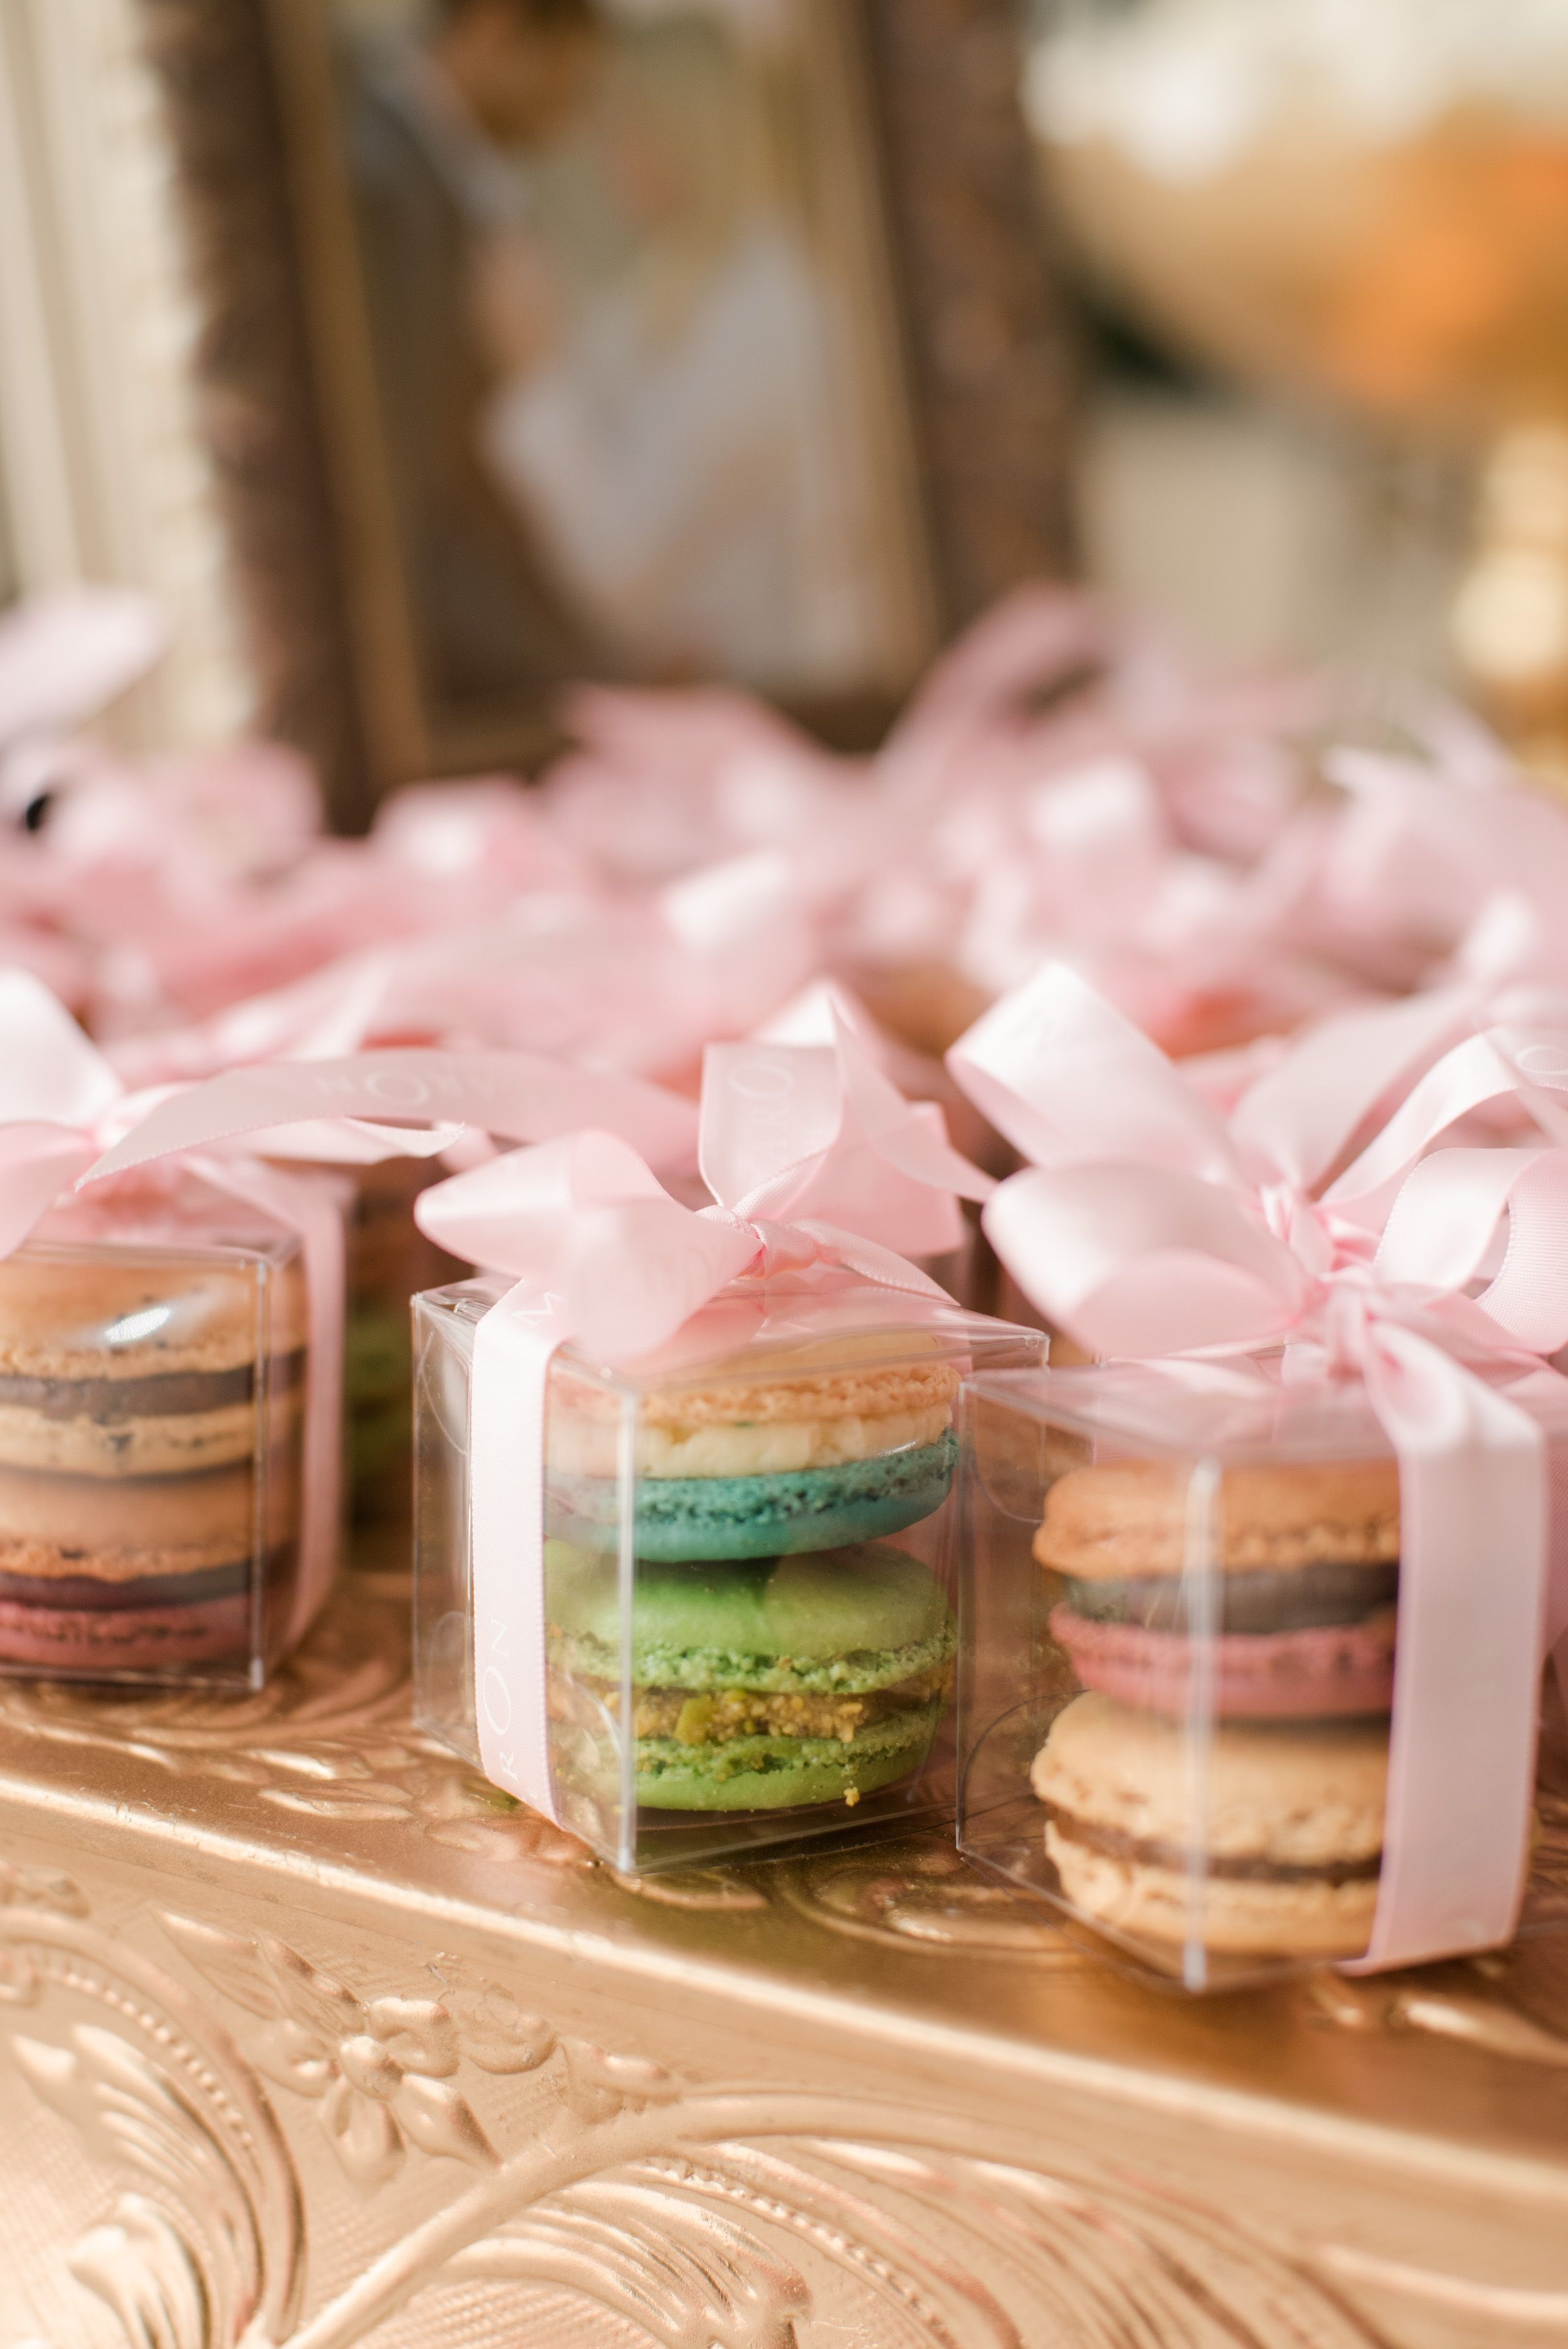 Are you trying to decide on wedding favors? As a wedding planner, I ...